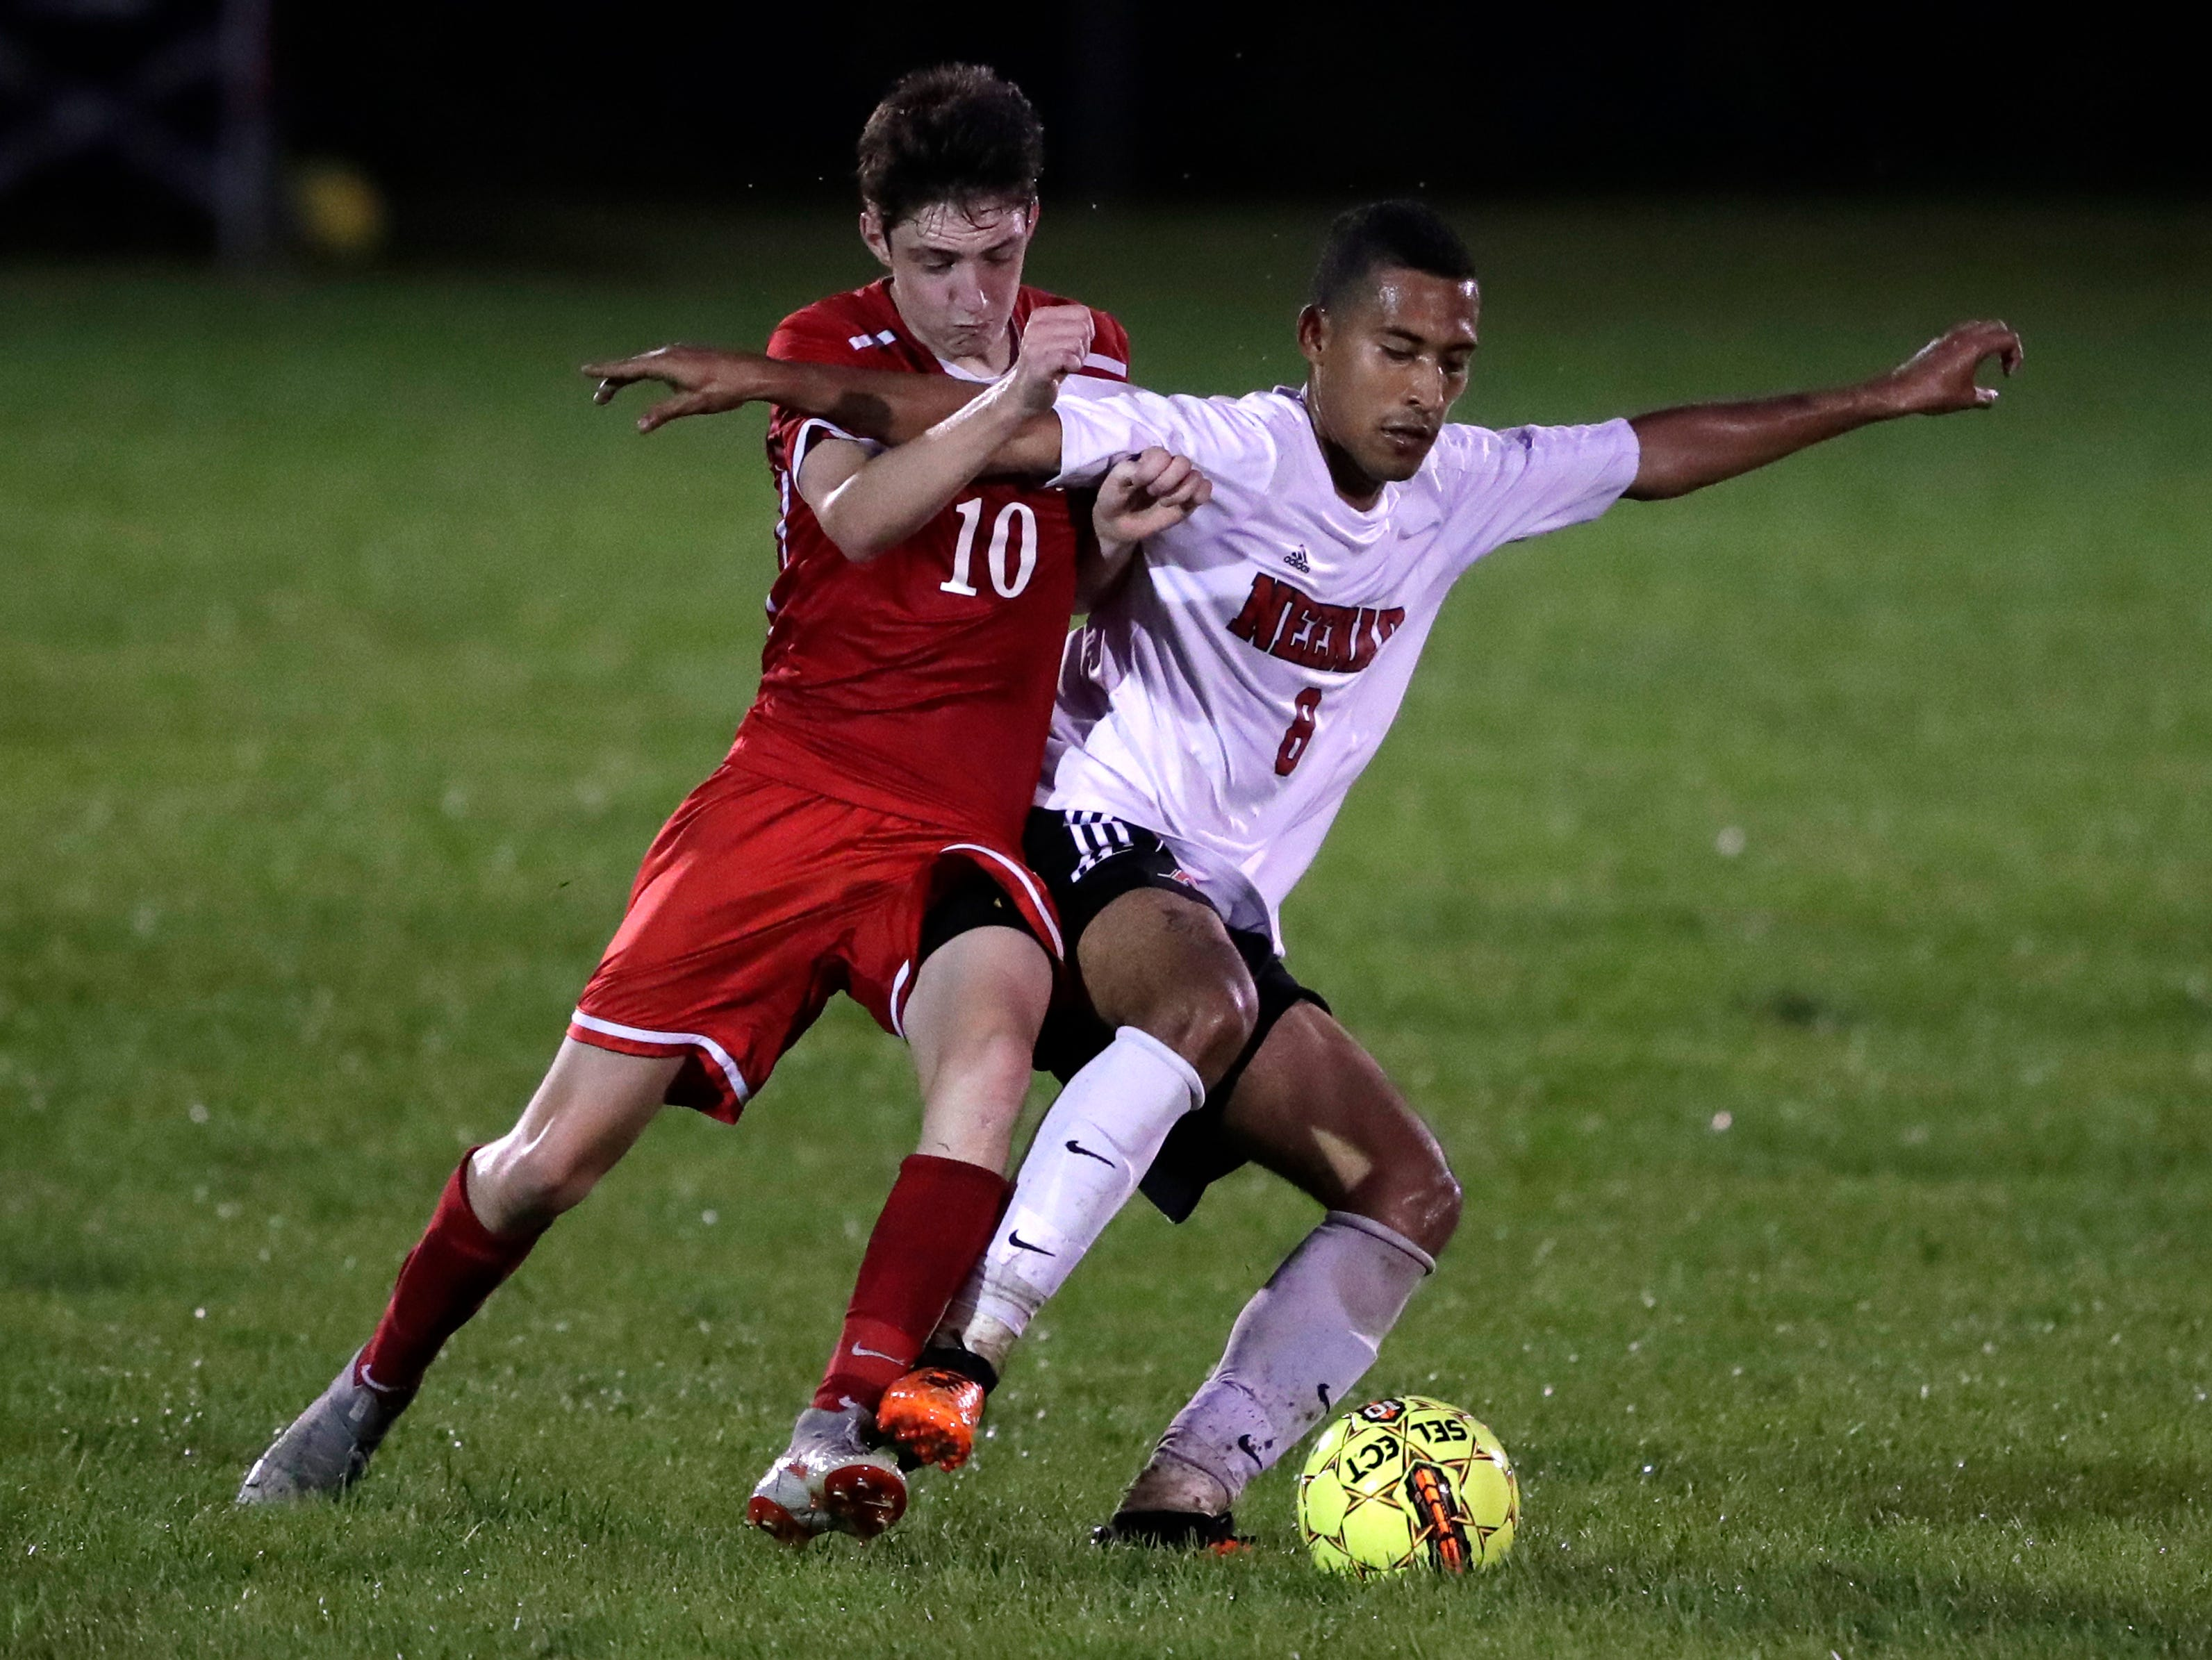 Kimberly High School's Dawson DeBoer (10) battles for possession of the ball against Neenah High School's Carlos Parra Polo (8) during their boys soccer game Tuesday, Sept. 4, 2018, at Papermaker Field in Kimberly, Wis. 